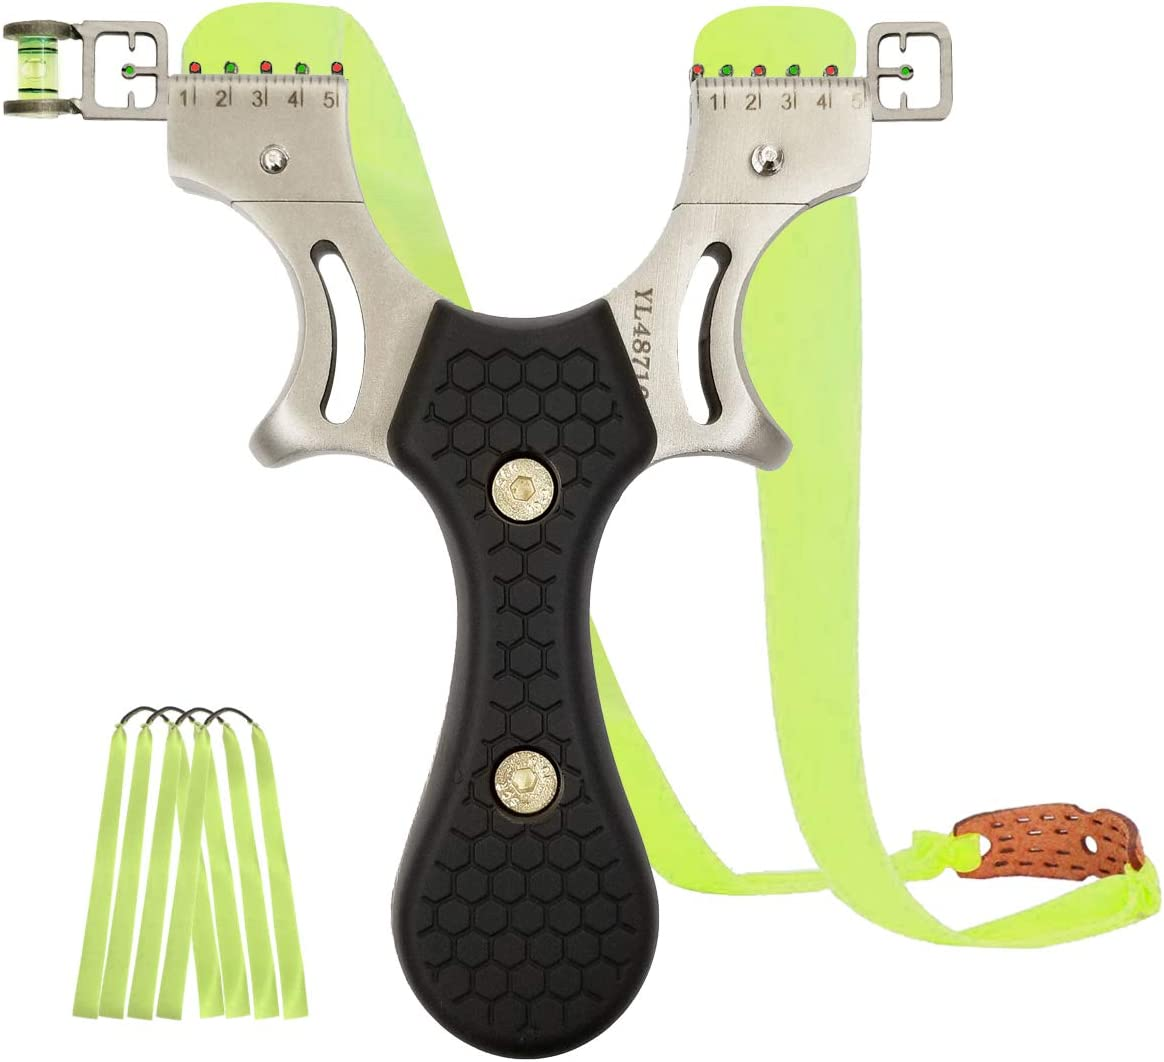 Luniquz Wrist Rocket Slingshot, Metal Wrist Sling Shot Catapult of High Velocity, Includes 4 Rubber Bands 2 Sights for Hunting,Fishing,Fowling